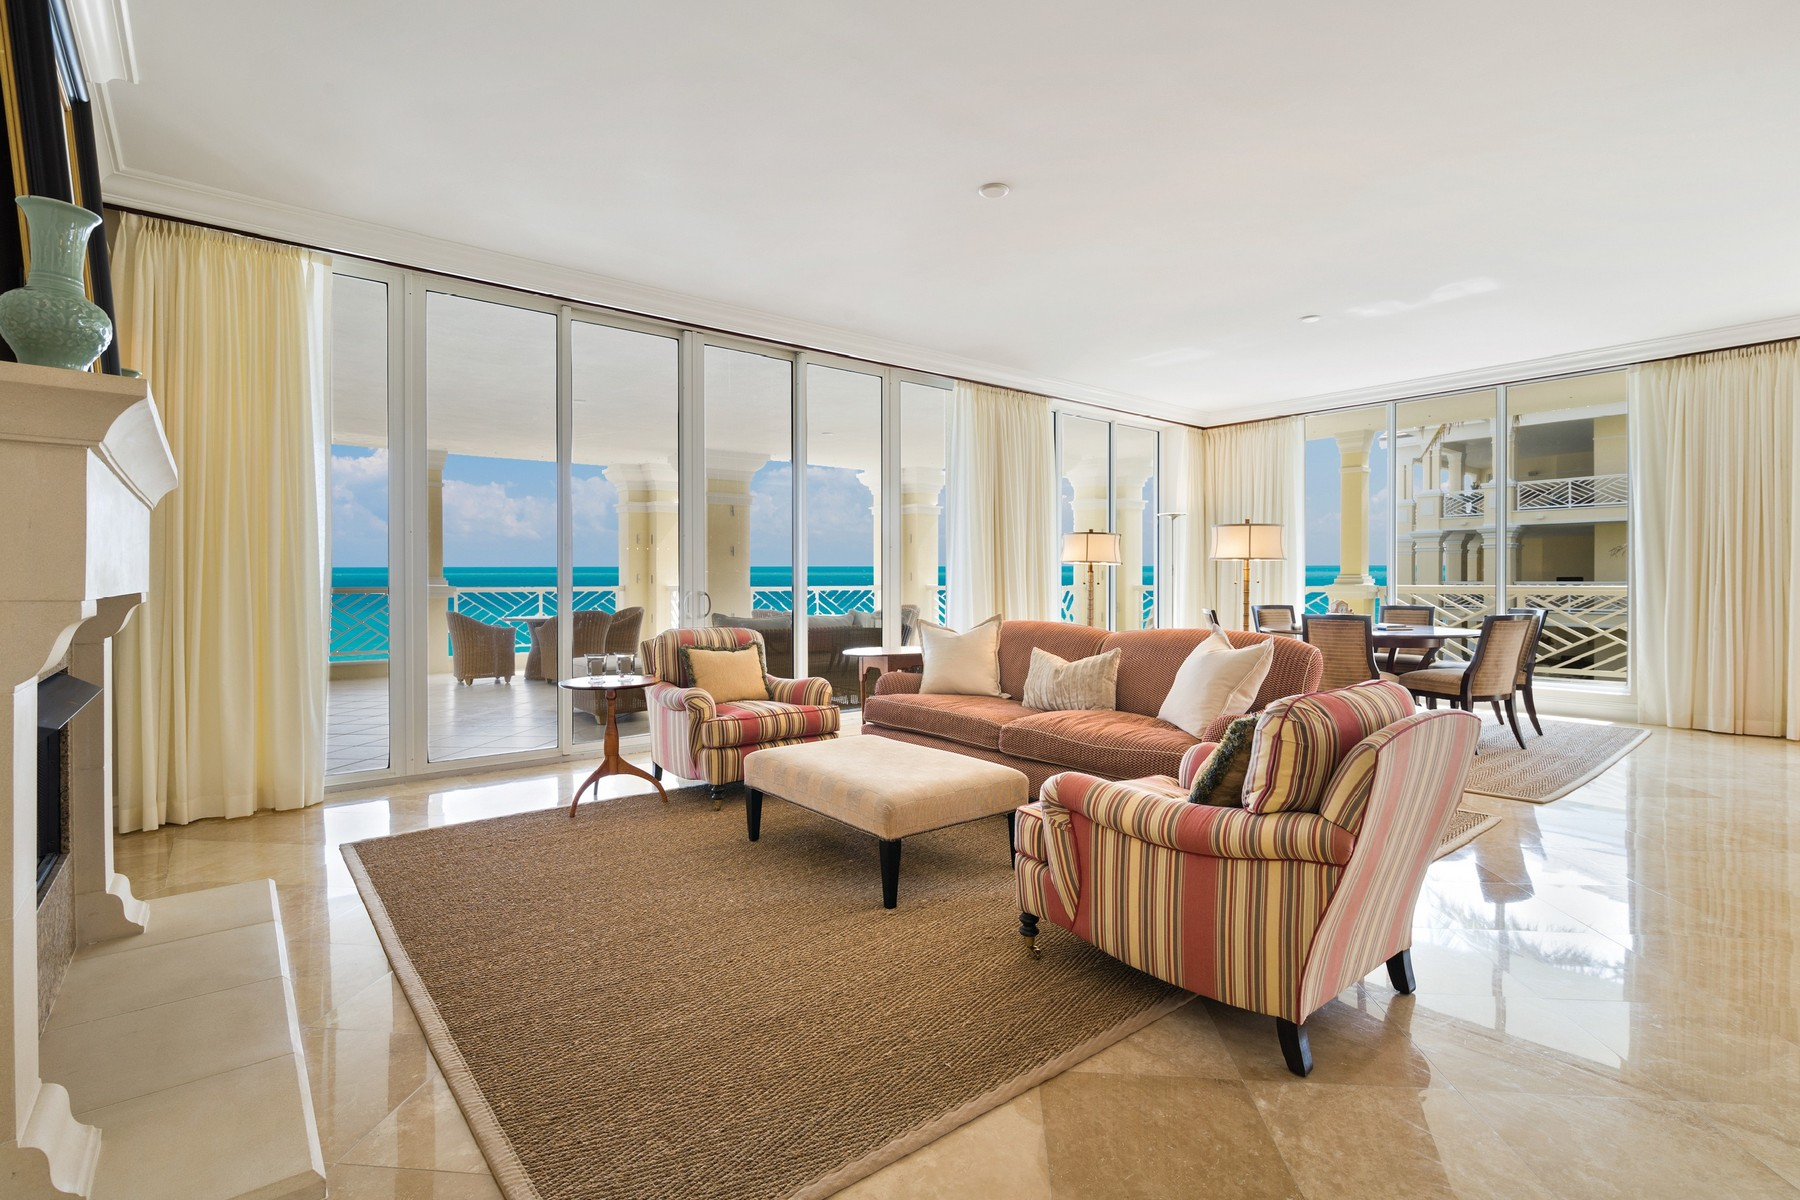 Propriété pour l Vente à Luxurious Oceanfront Living 200 Beachview Drive 3S Indian River Shores, Floride 32963 États-Unis